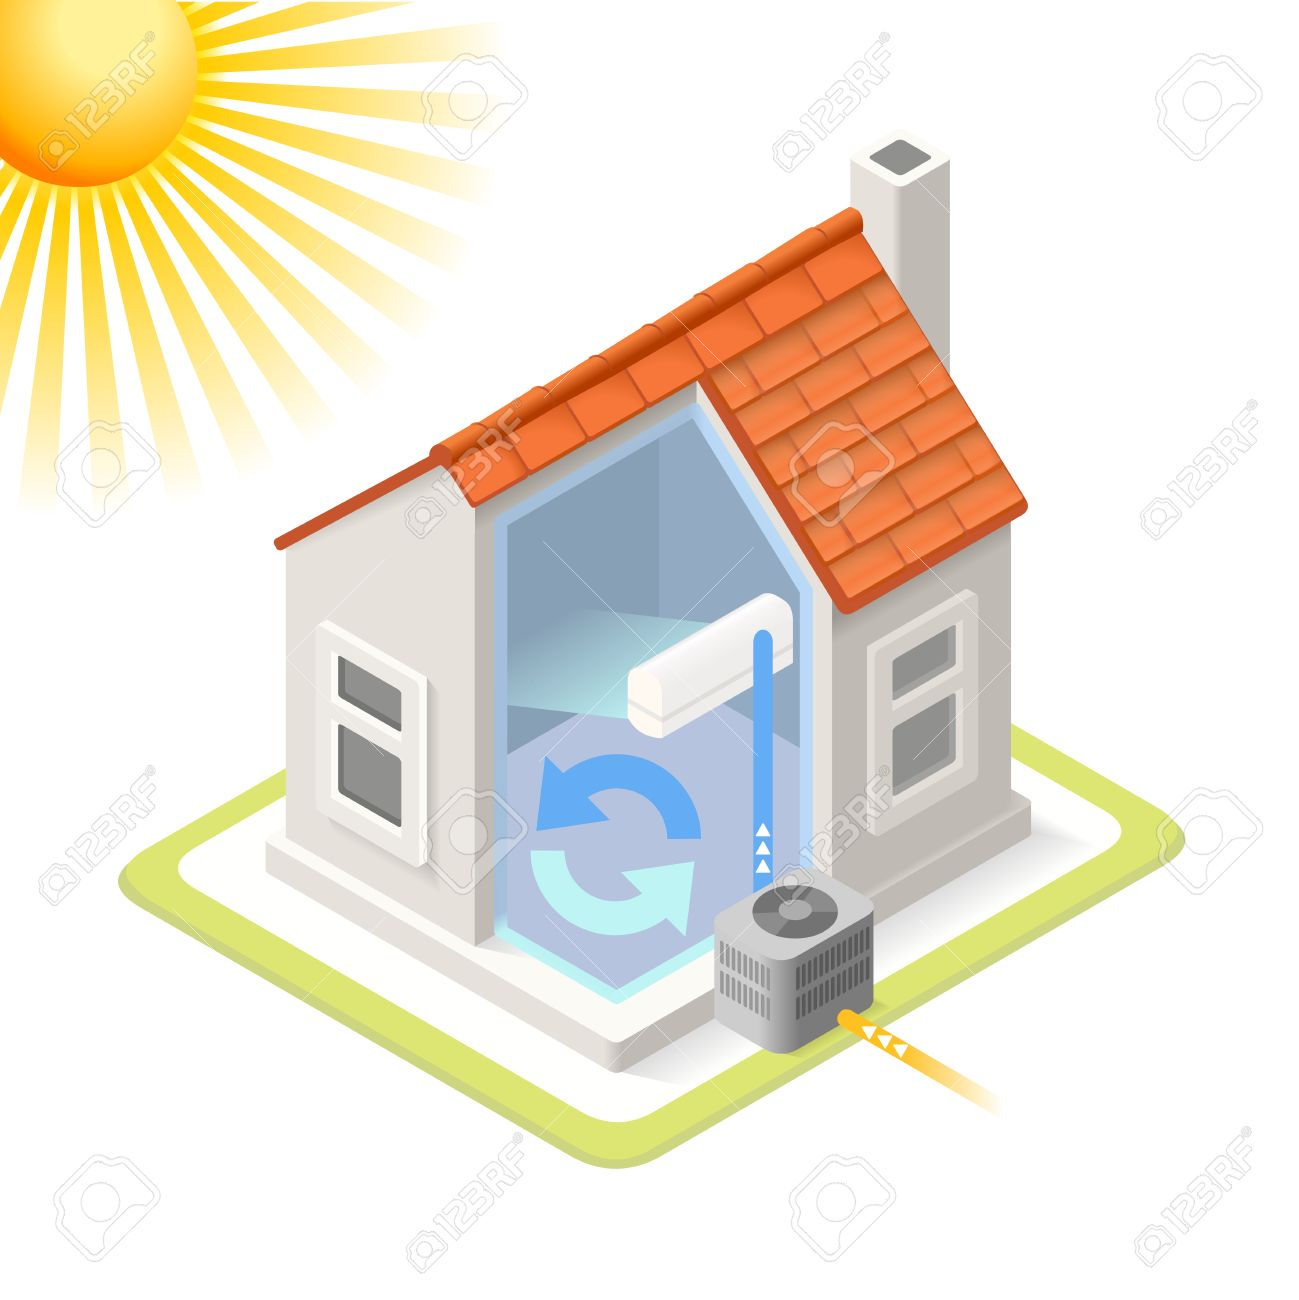 Heat Pump House Cooling System Infographic Icon Concept. Isometric 3d  Soften Colors Elements. Air